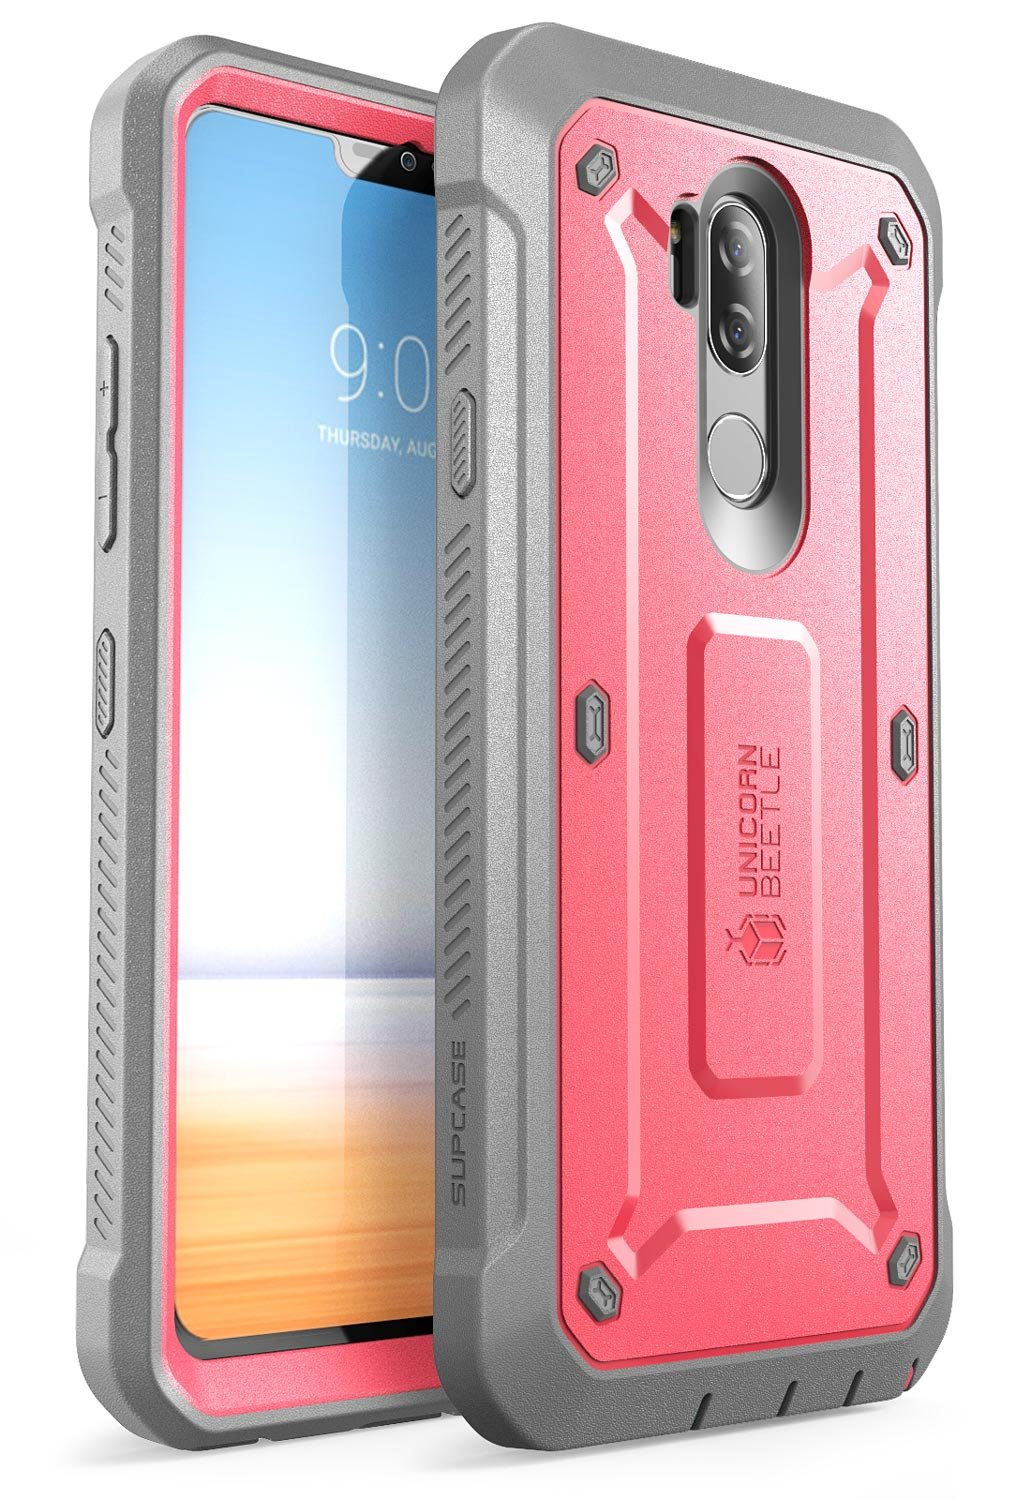 LG G7 Case, LG G7 ThinQ Case, SUPCASE Unicorn Beetle Series Premium Hybrid Protective Clear Case for Samsung Galaxy LG G7 2018 Release, Retail Package (Black) 4344625660